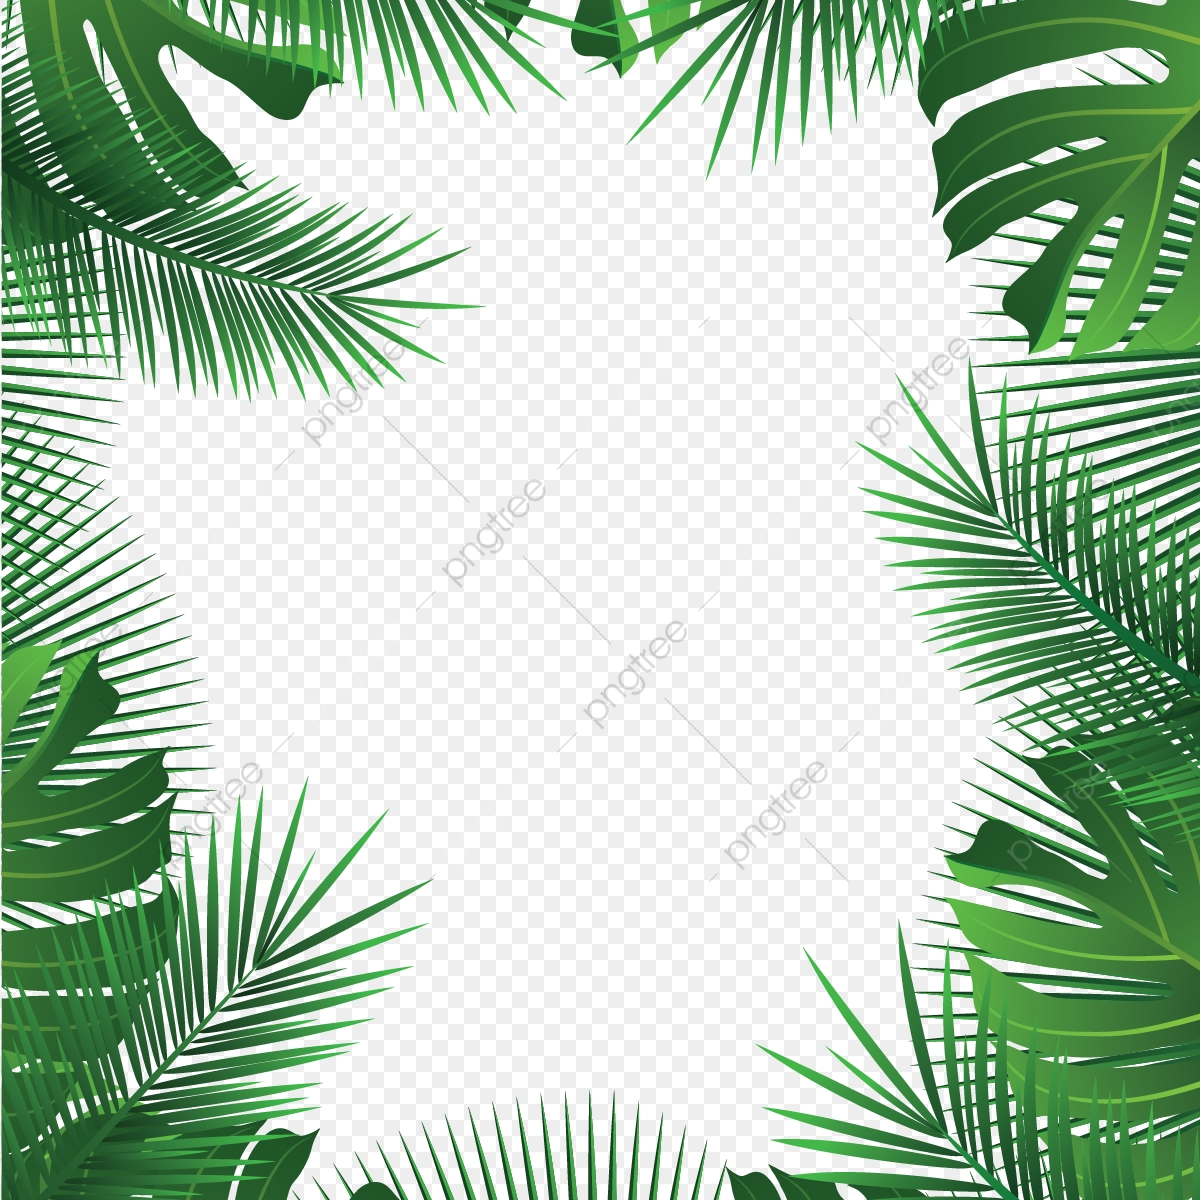 Tropical Leaves Png Images Vector And Psd Files Free Download On Pngtree Search icons with this style. https pngtree com freepng tropical leaves frame 3582555 html